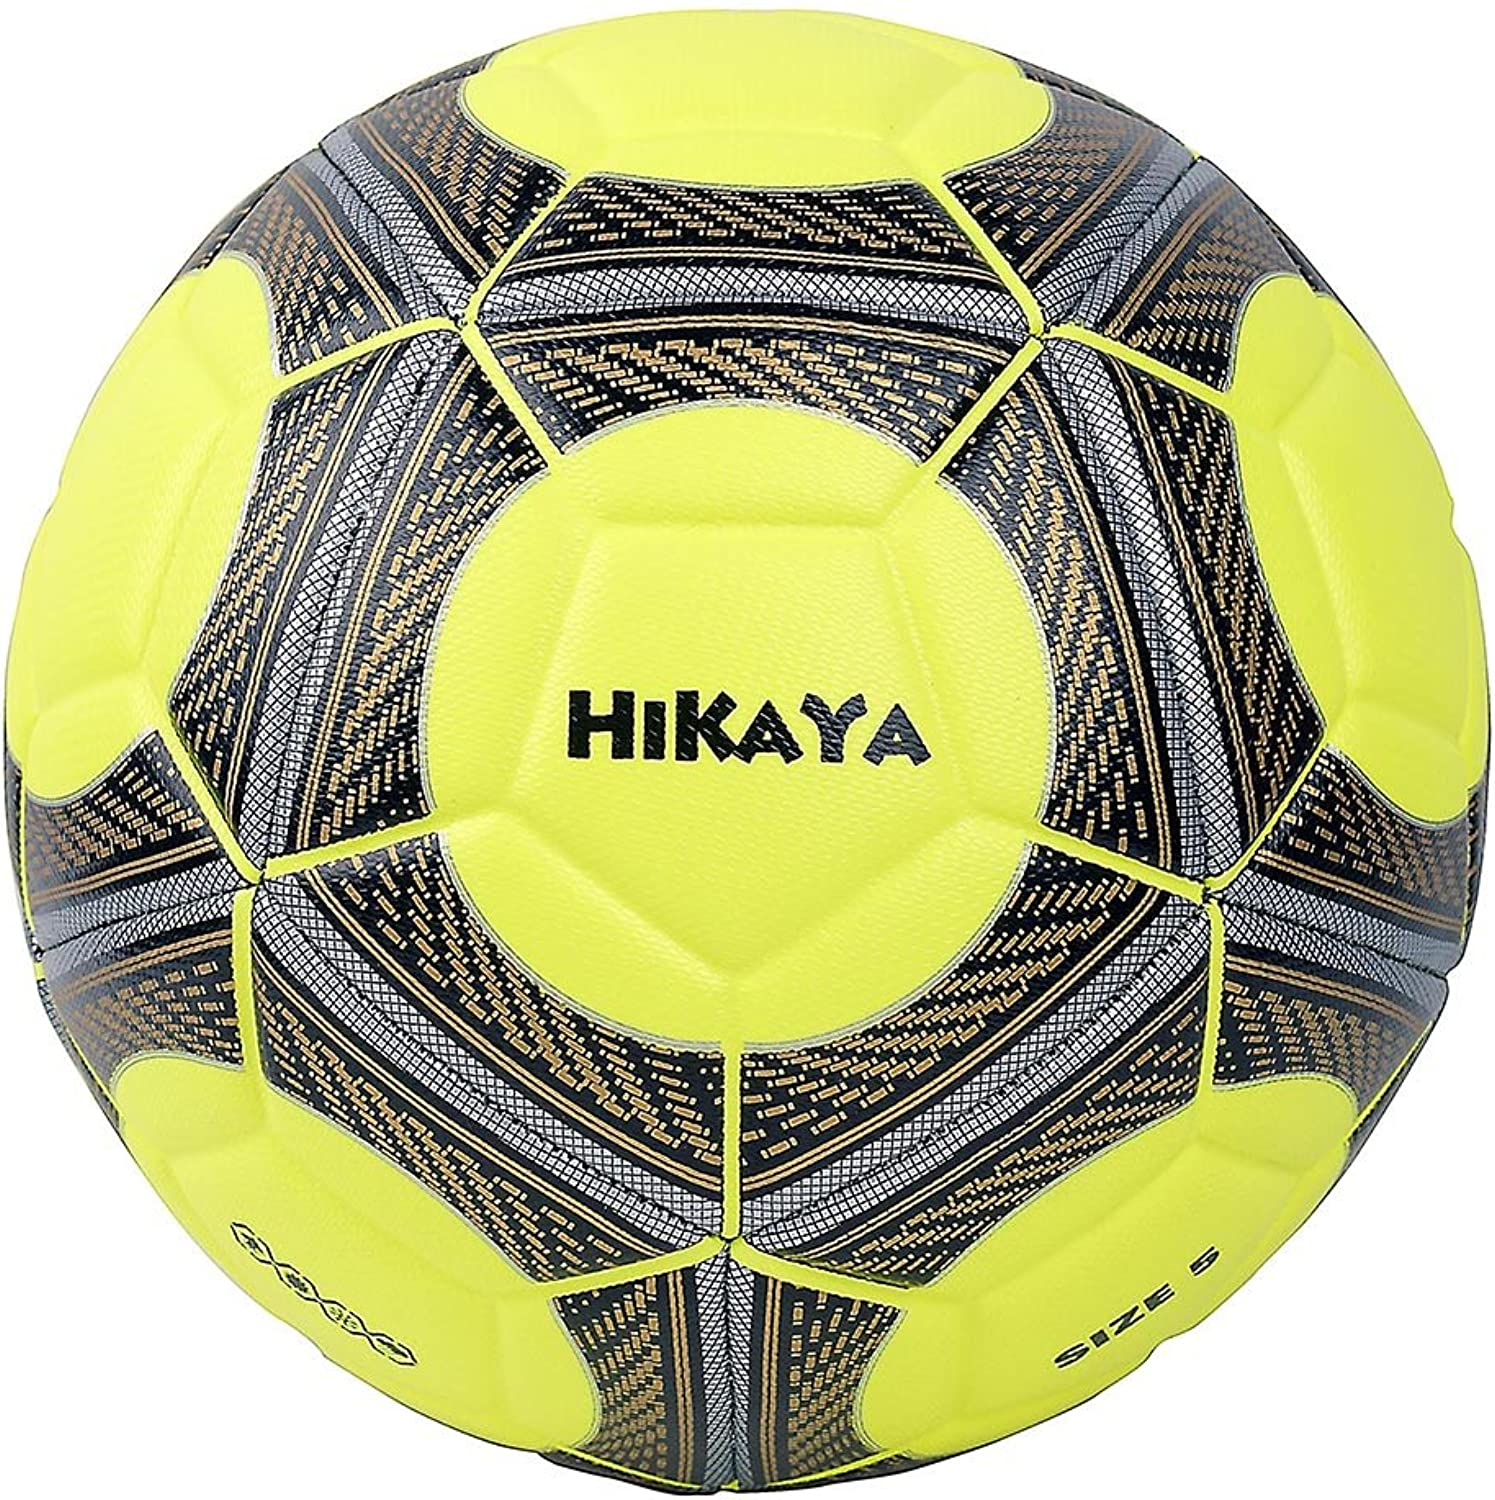 HIKAYA Premier PU Soccer Ball Official Size 5 Soft Touch for Training and Match